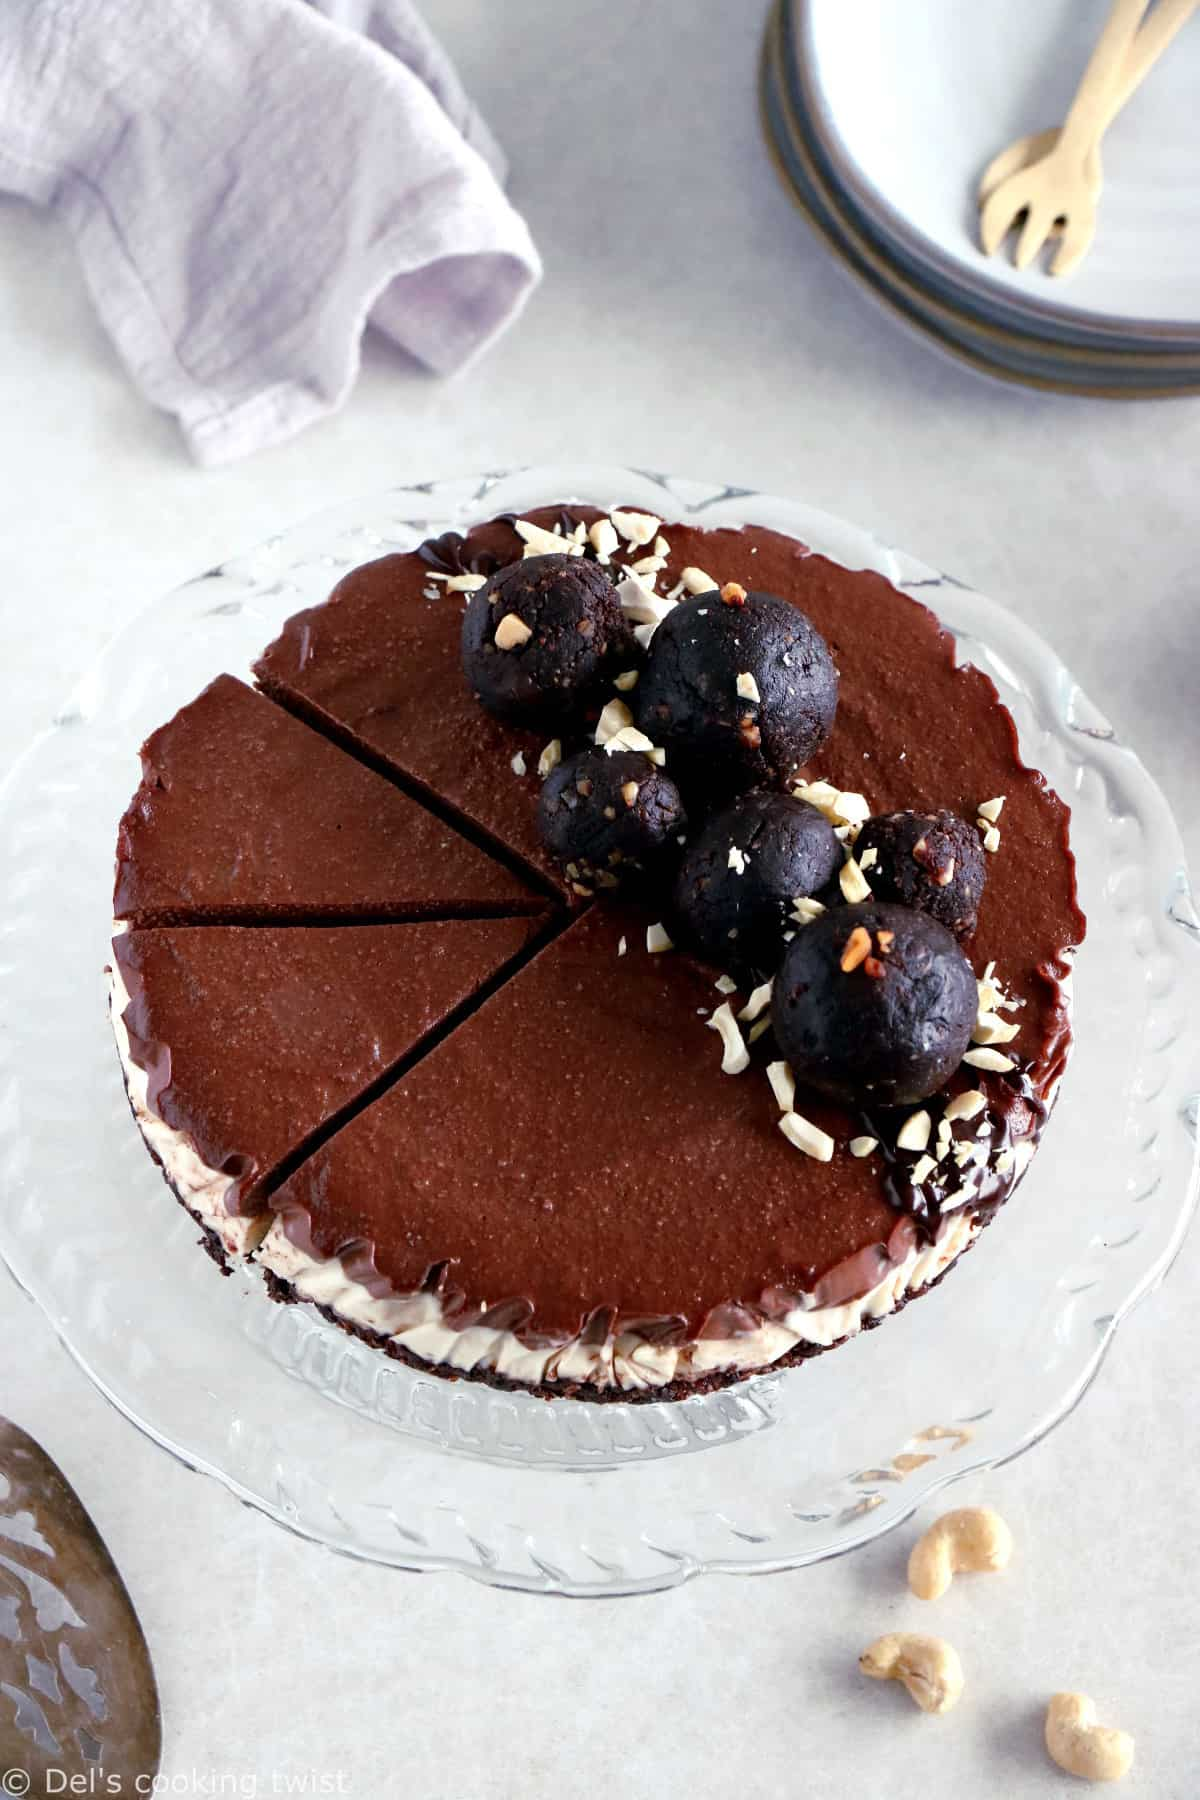 No-bake vegan chocolate cashew cheesecake is a dream come true. This healthy vegan dessert recipe has a rich chocolate filling and a crunchy nut base.